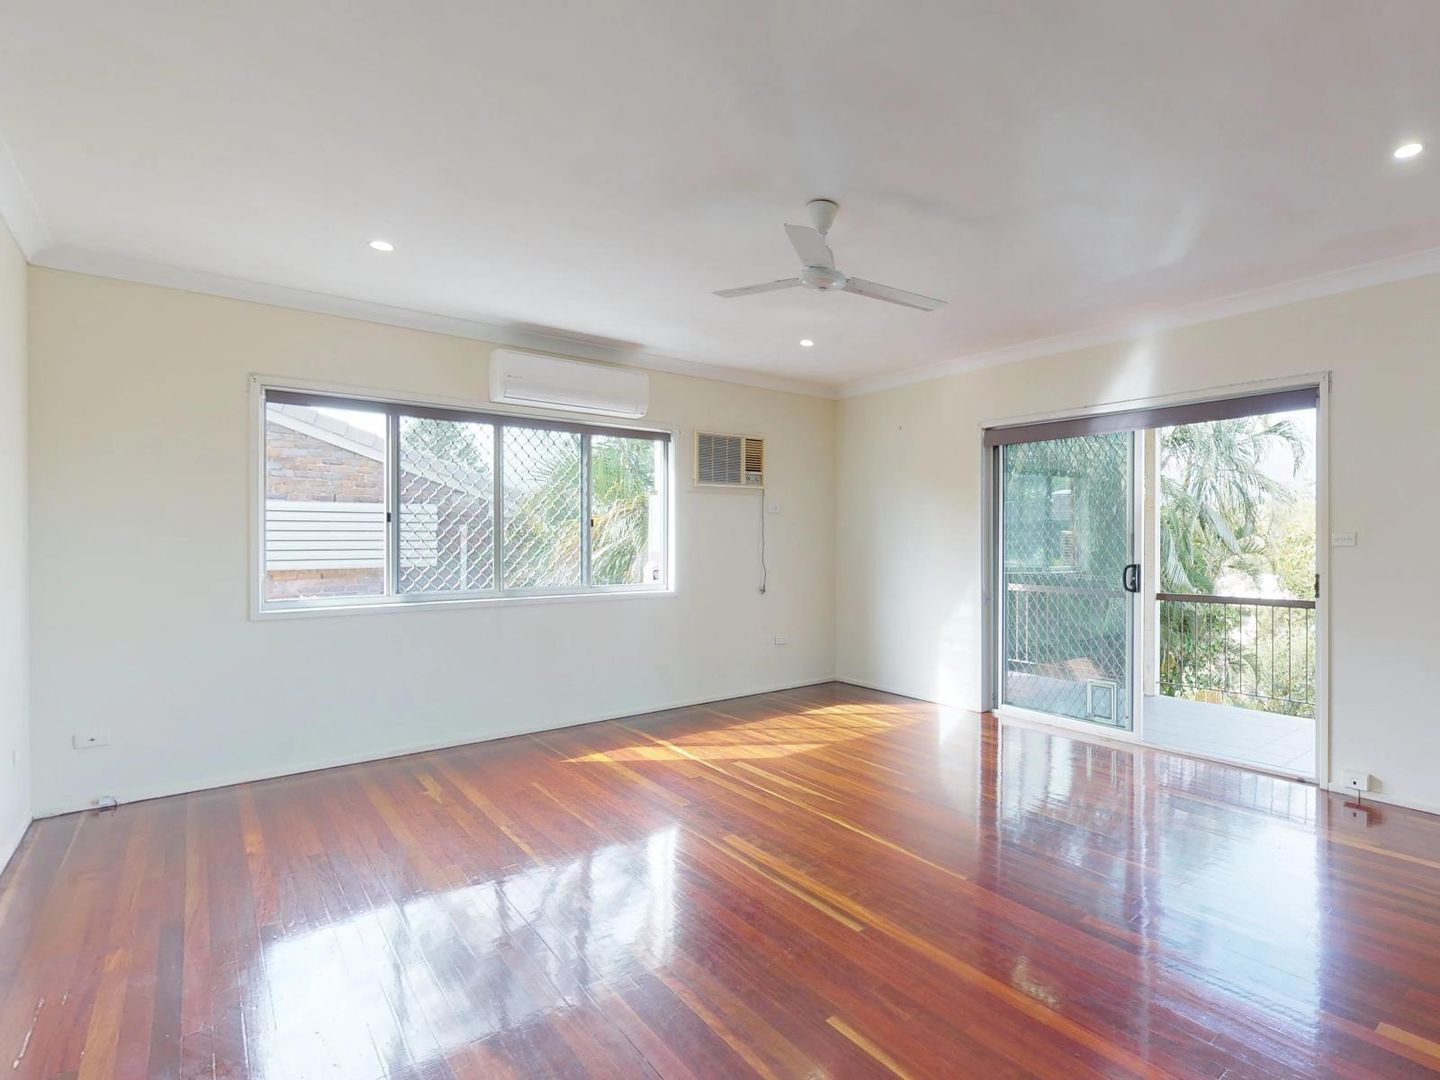 7 Mccamley Street, The Range QLD 4700, Image 2